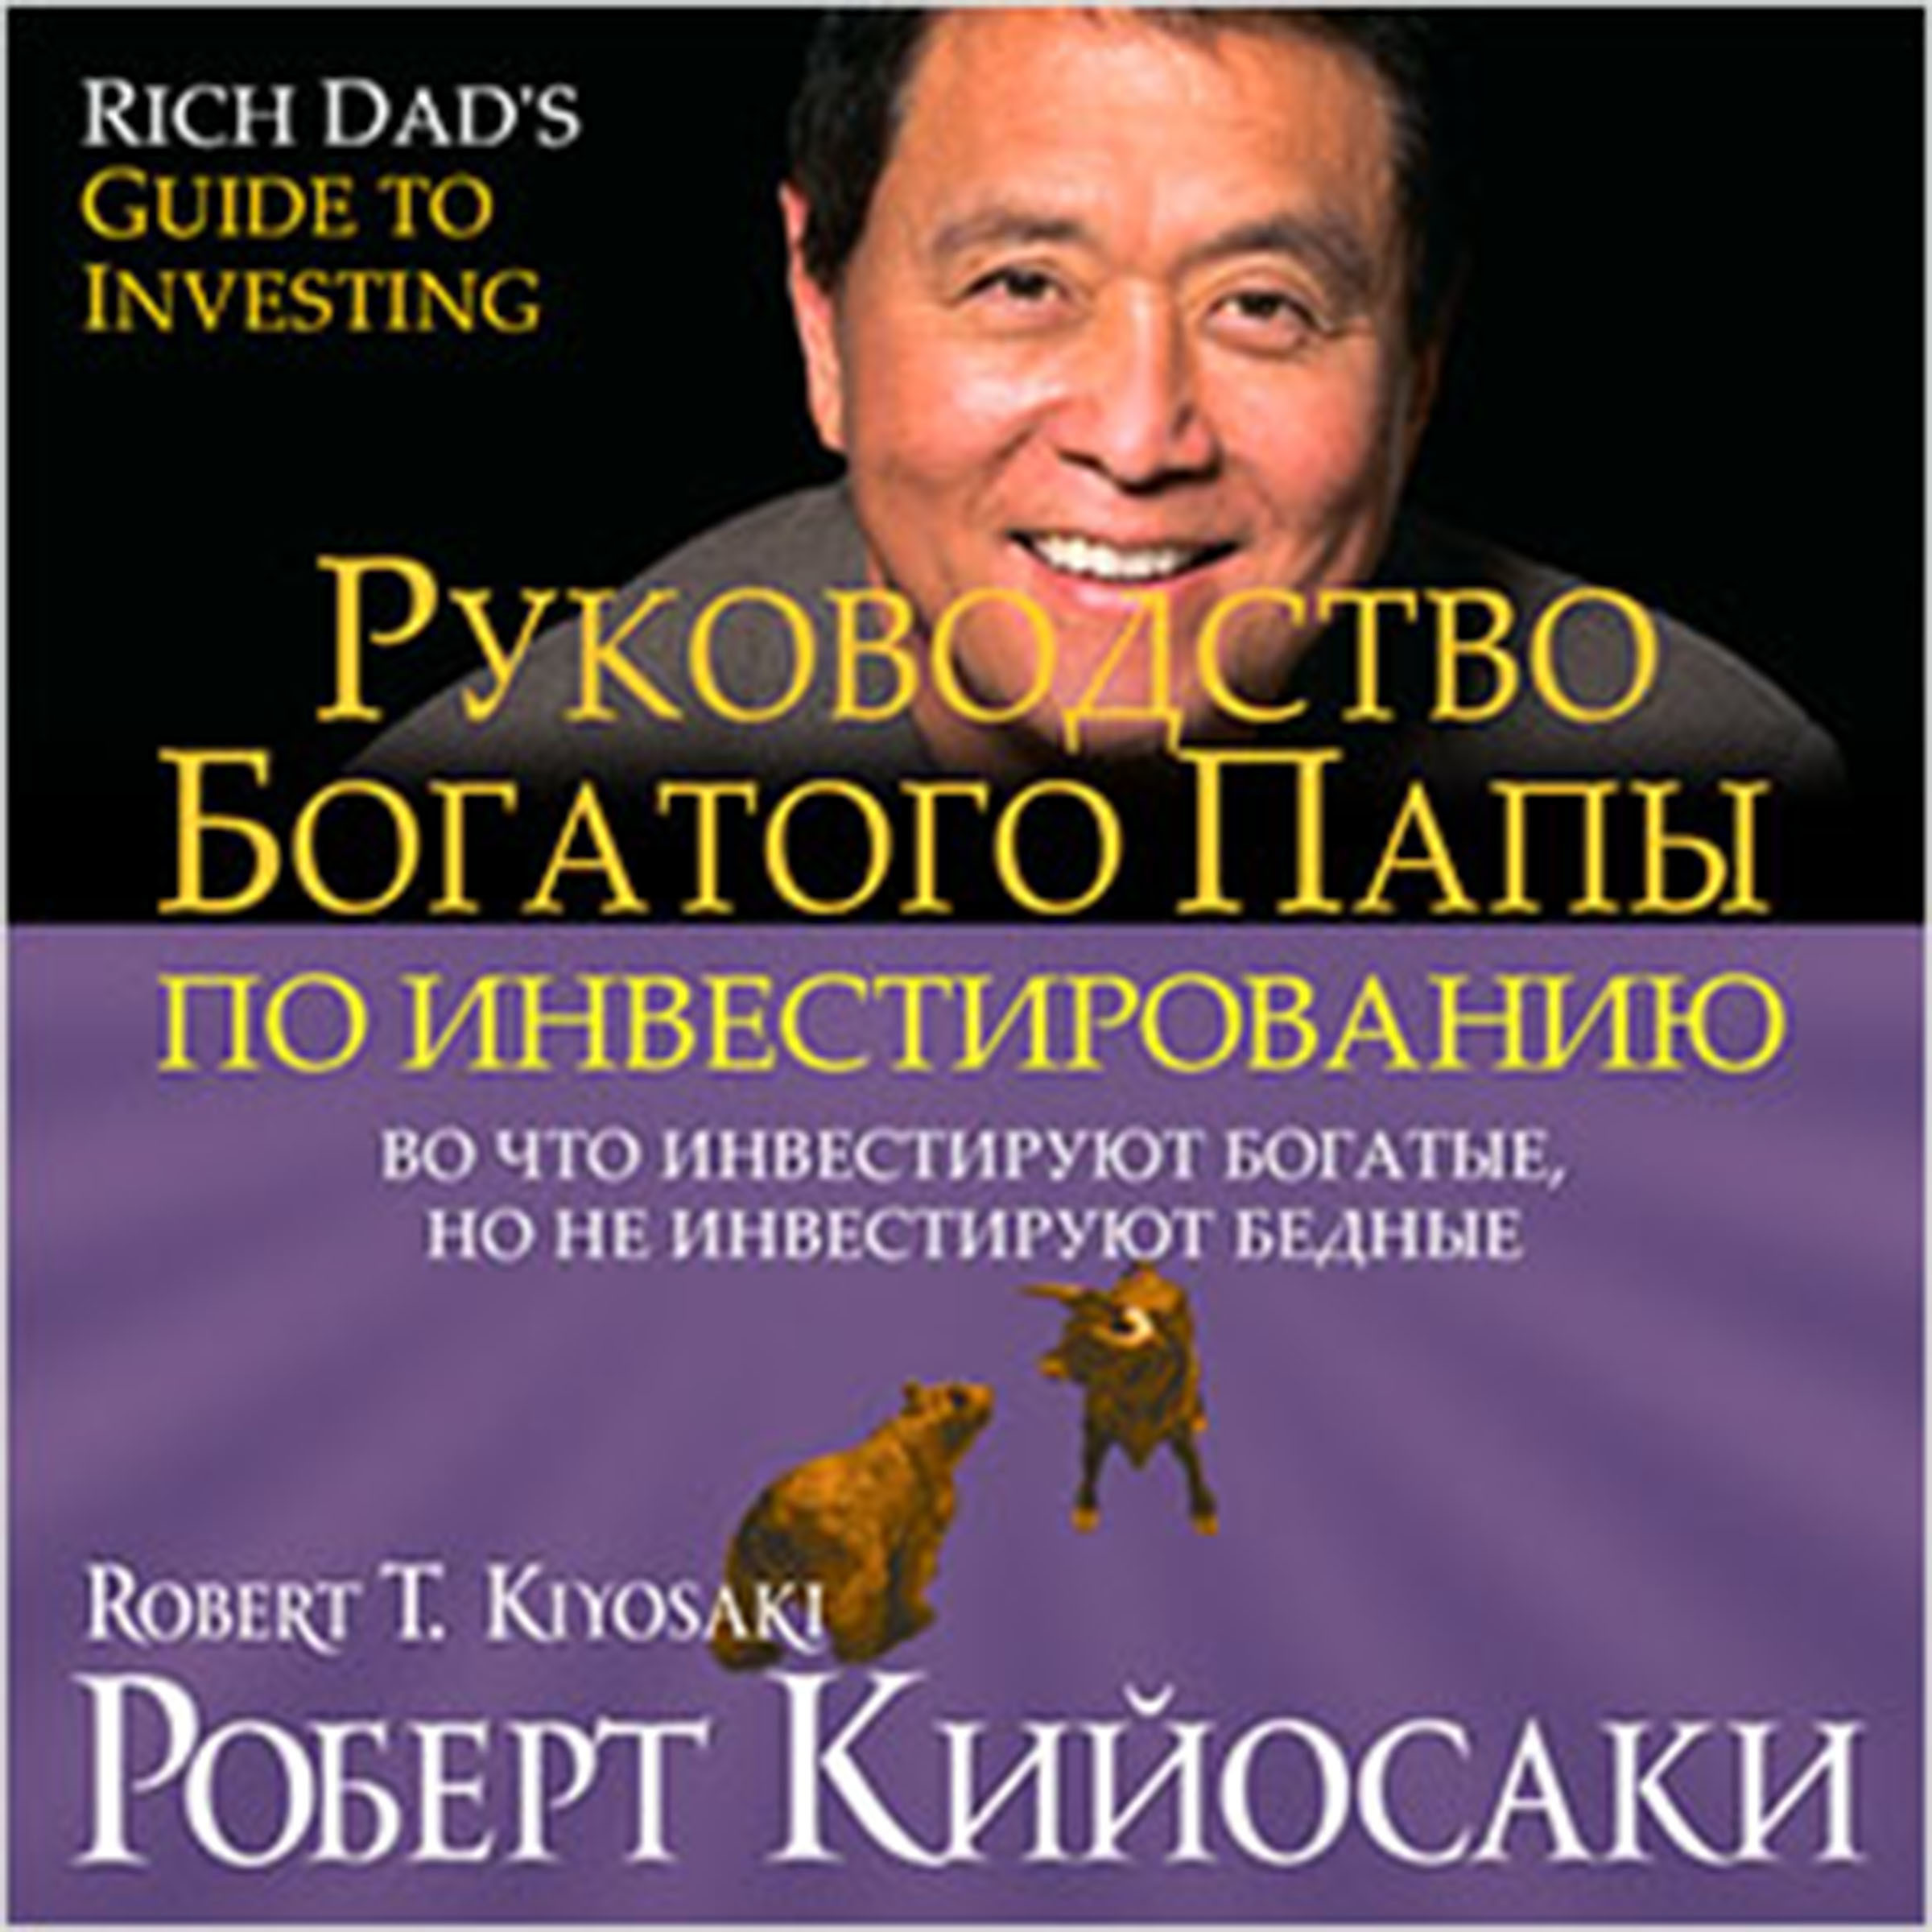 rich dad s guide to investing what the rich invest in that the rh audiobookstore com rich dad guide to investing free pdf rich dad's guide to investing review